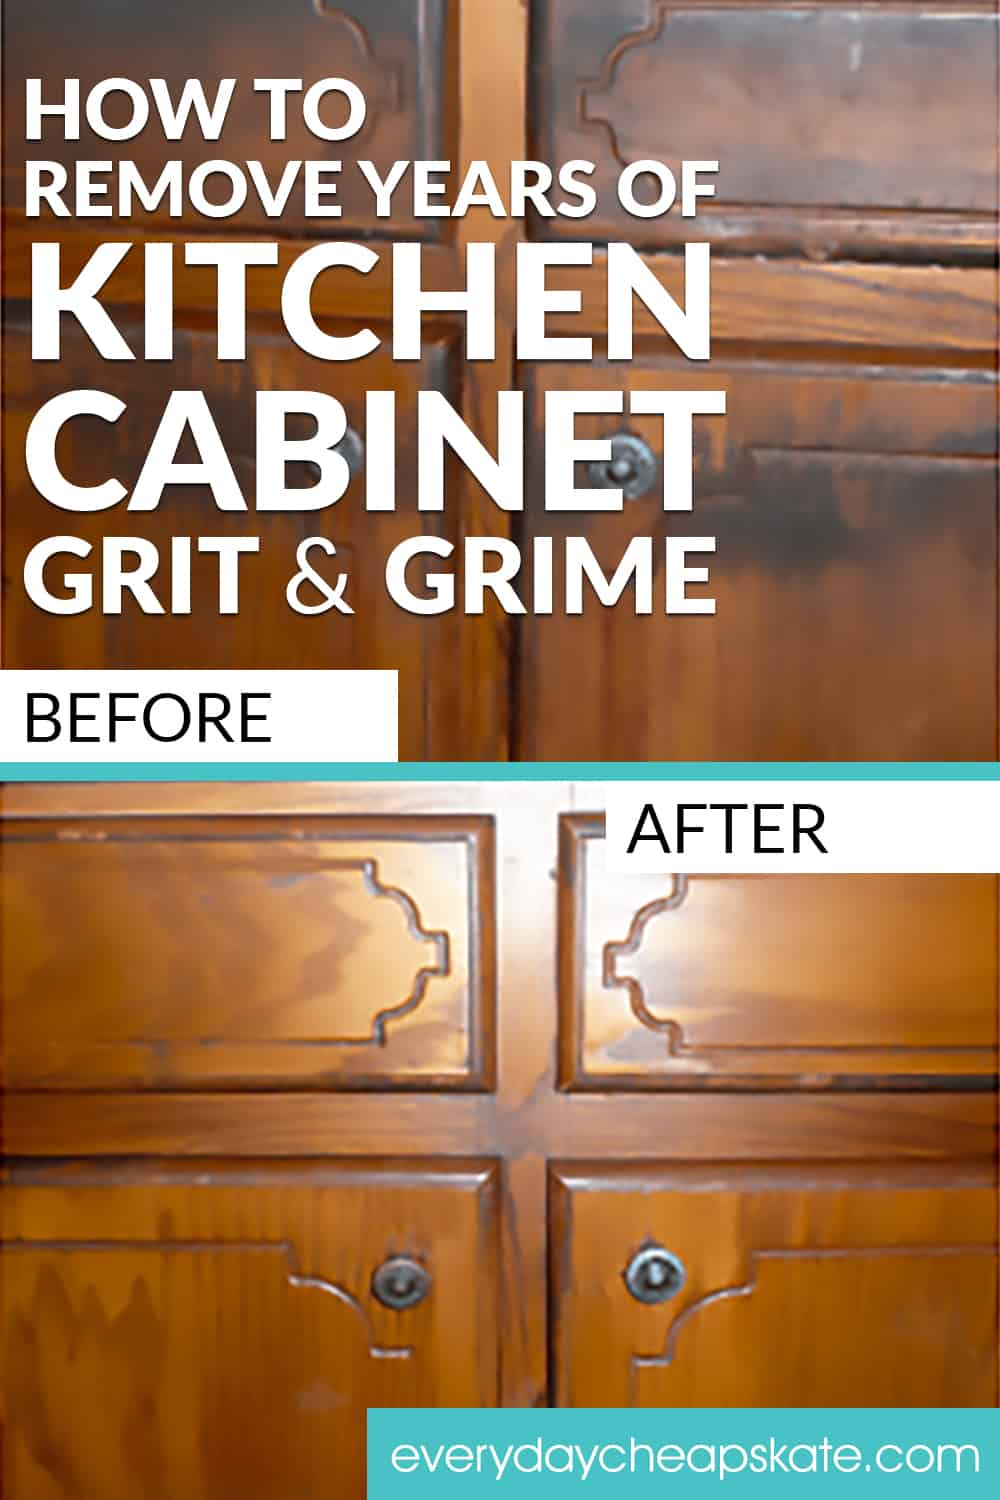 When Did You Last Look At Your Kitchen Cabinets Not A Passing Glance But An Up Close Visual Study Payi Cleaning Cabinets Cleaning Wood Cabinets Cleaning Wood